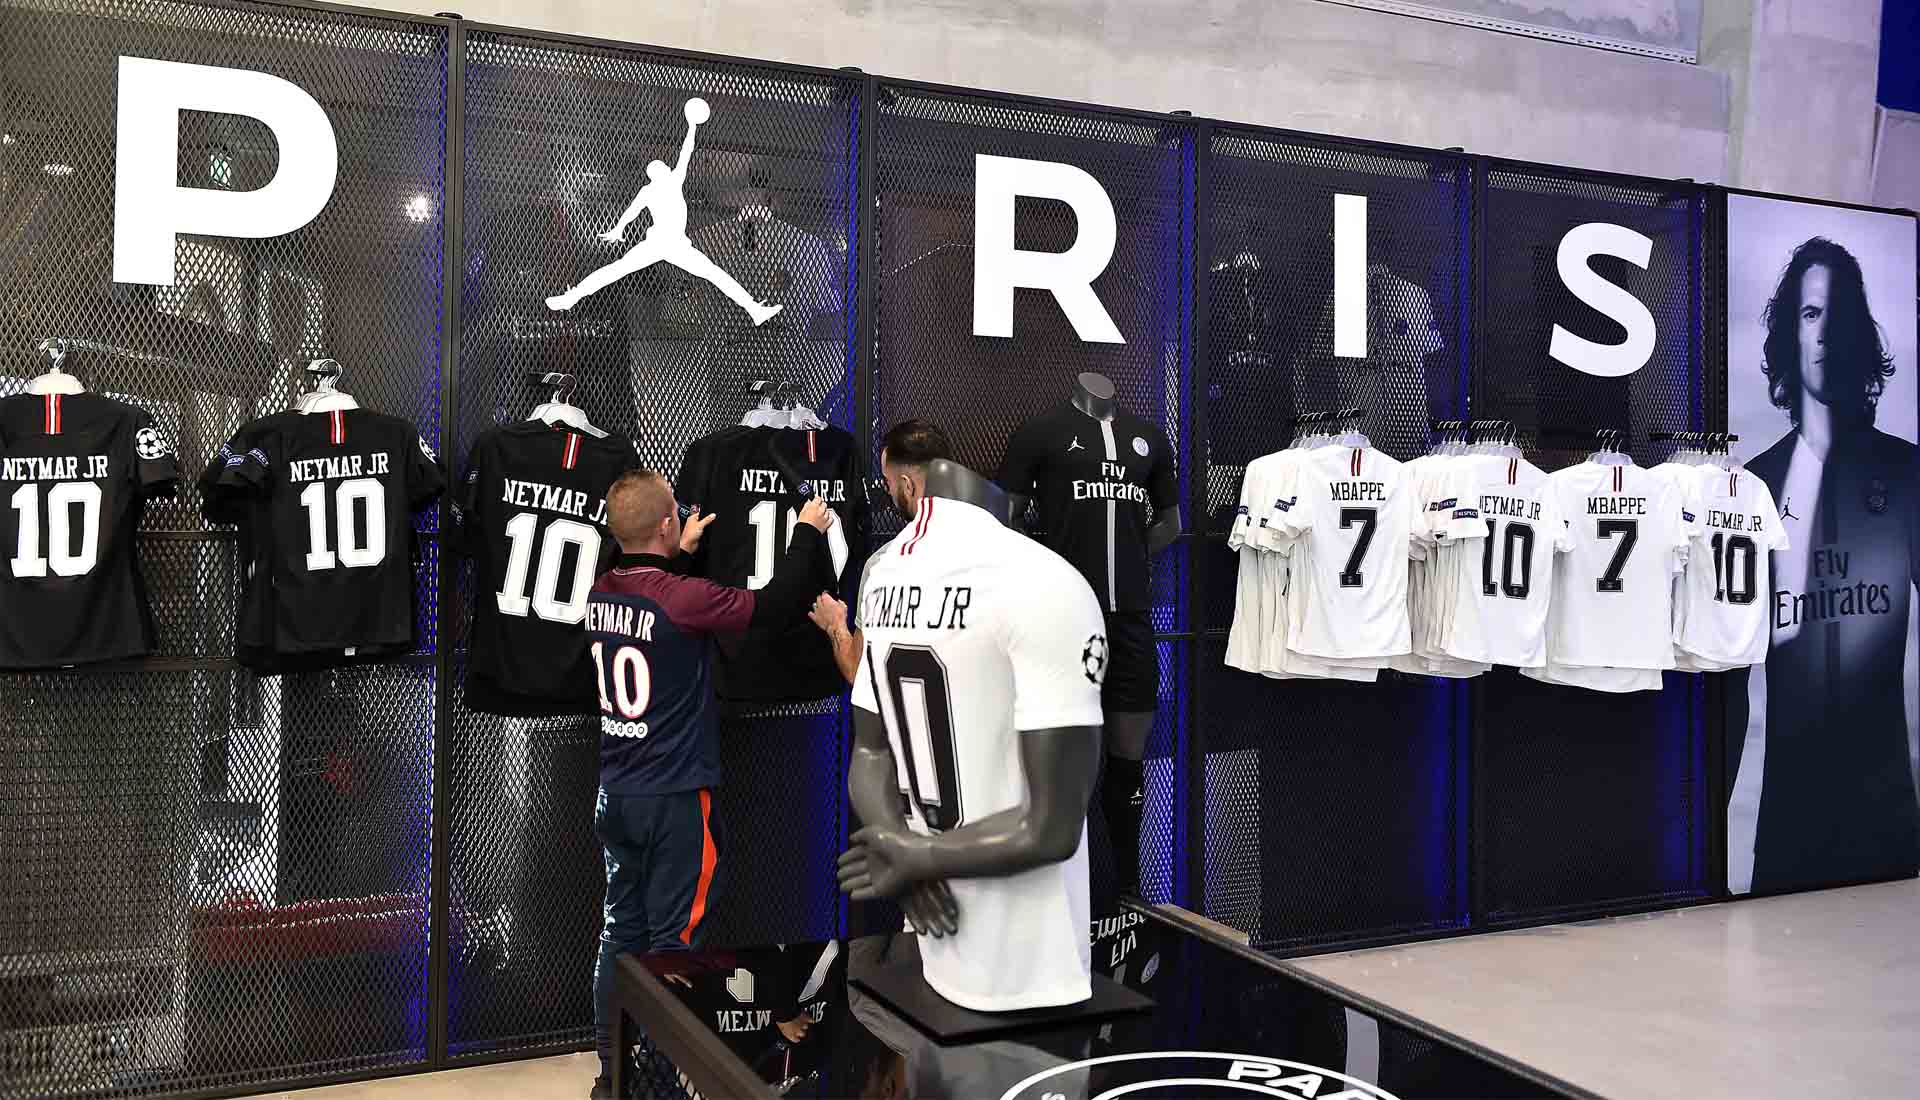 best service 622be dbcec PSG Shirt Sales To Hit One Million For The Season - SoccerBible